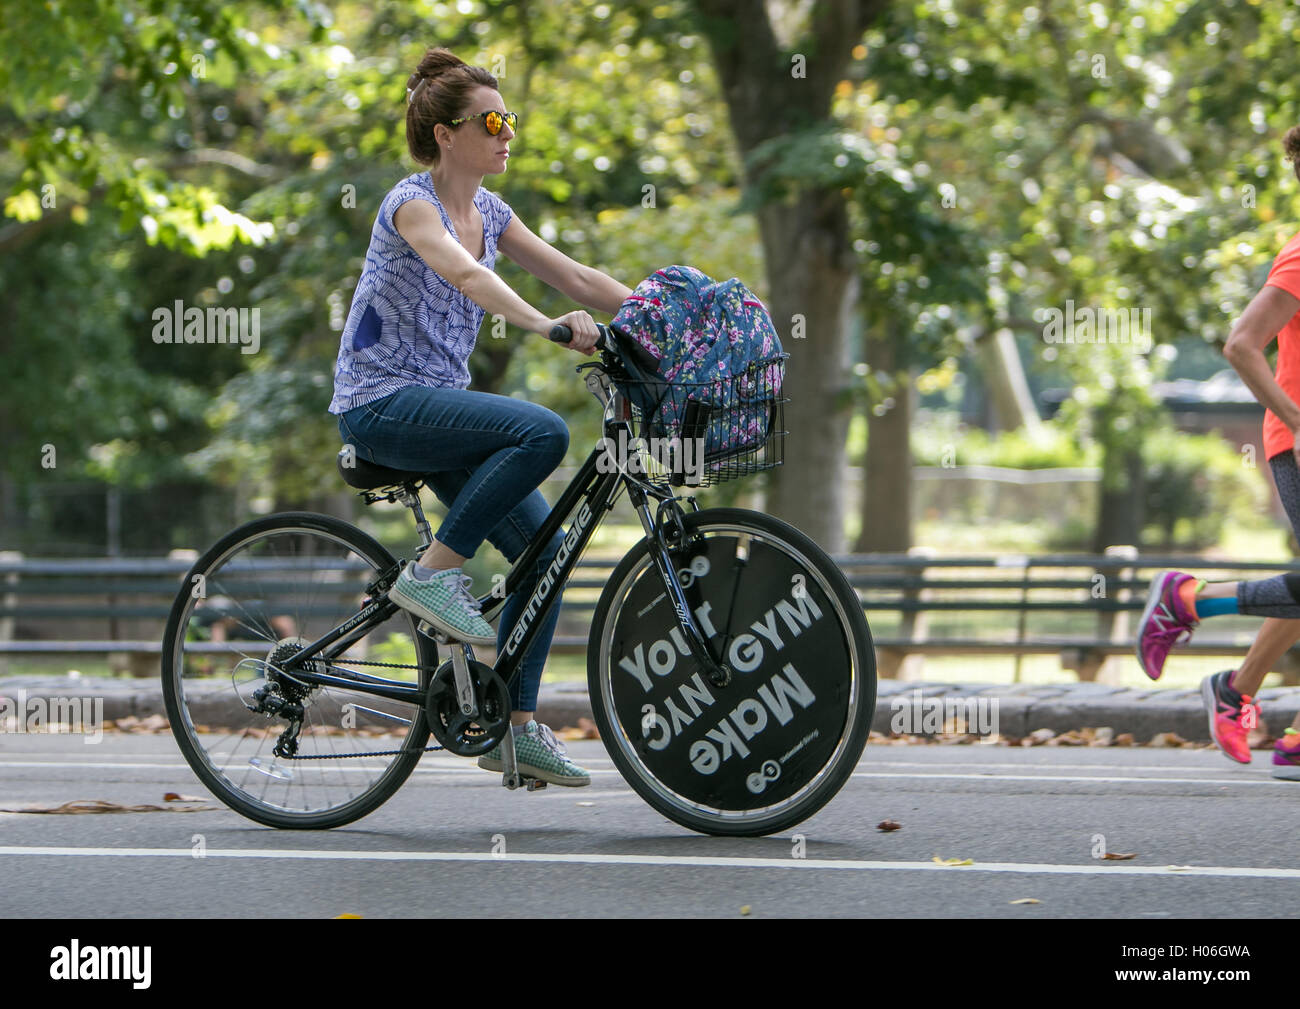 a-young-woman-is-riding-a-bicycle-in-cen